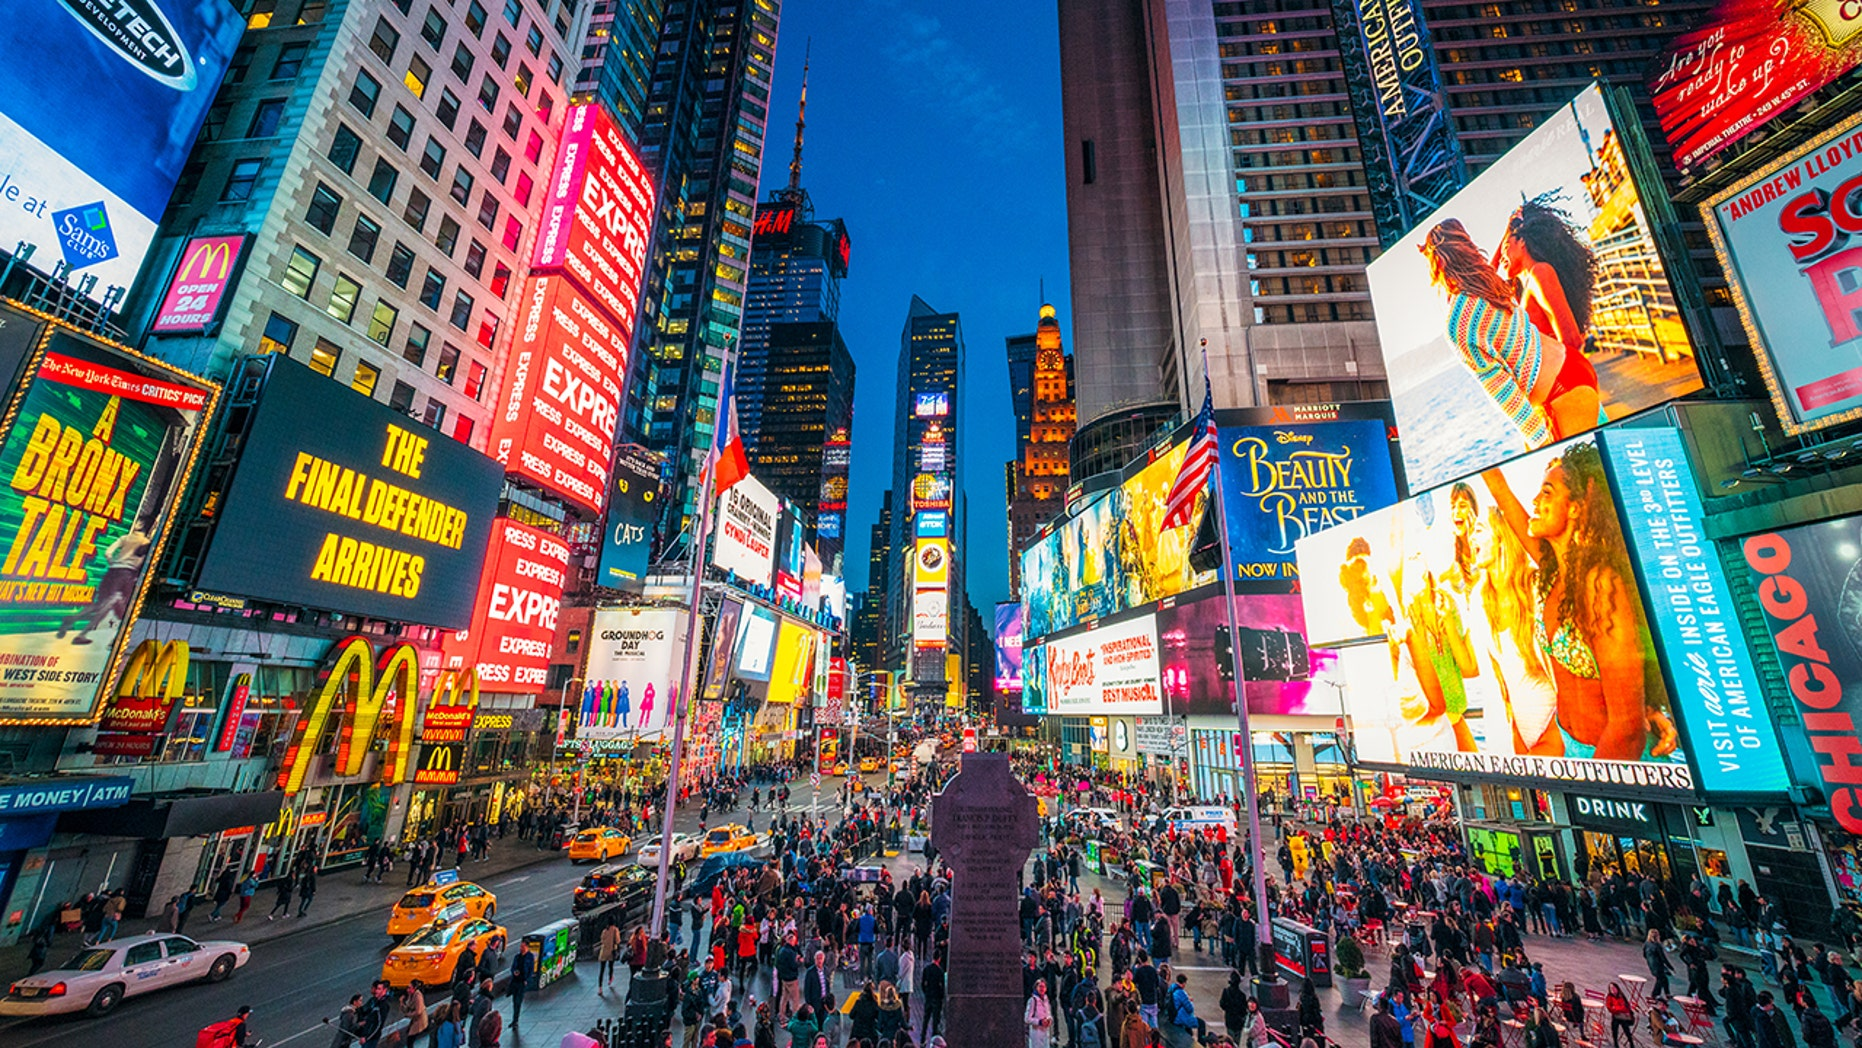 Times Square covered with illuminated billboards during the 'blue hour' period at dusk, with tourists on the streets.